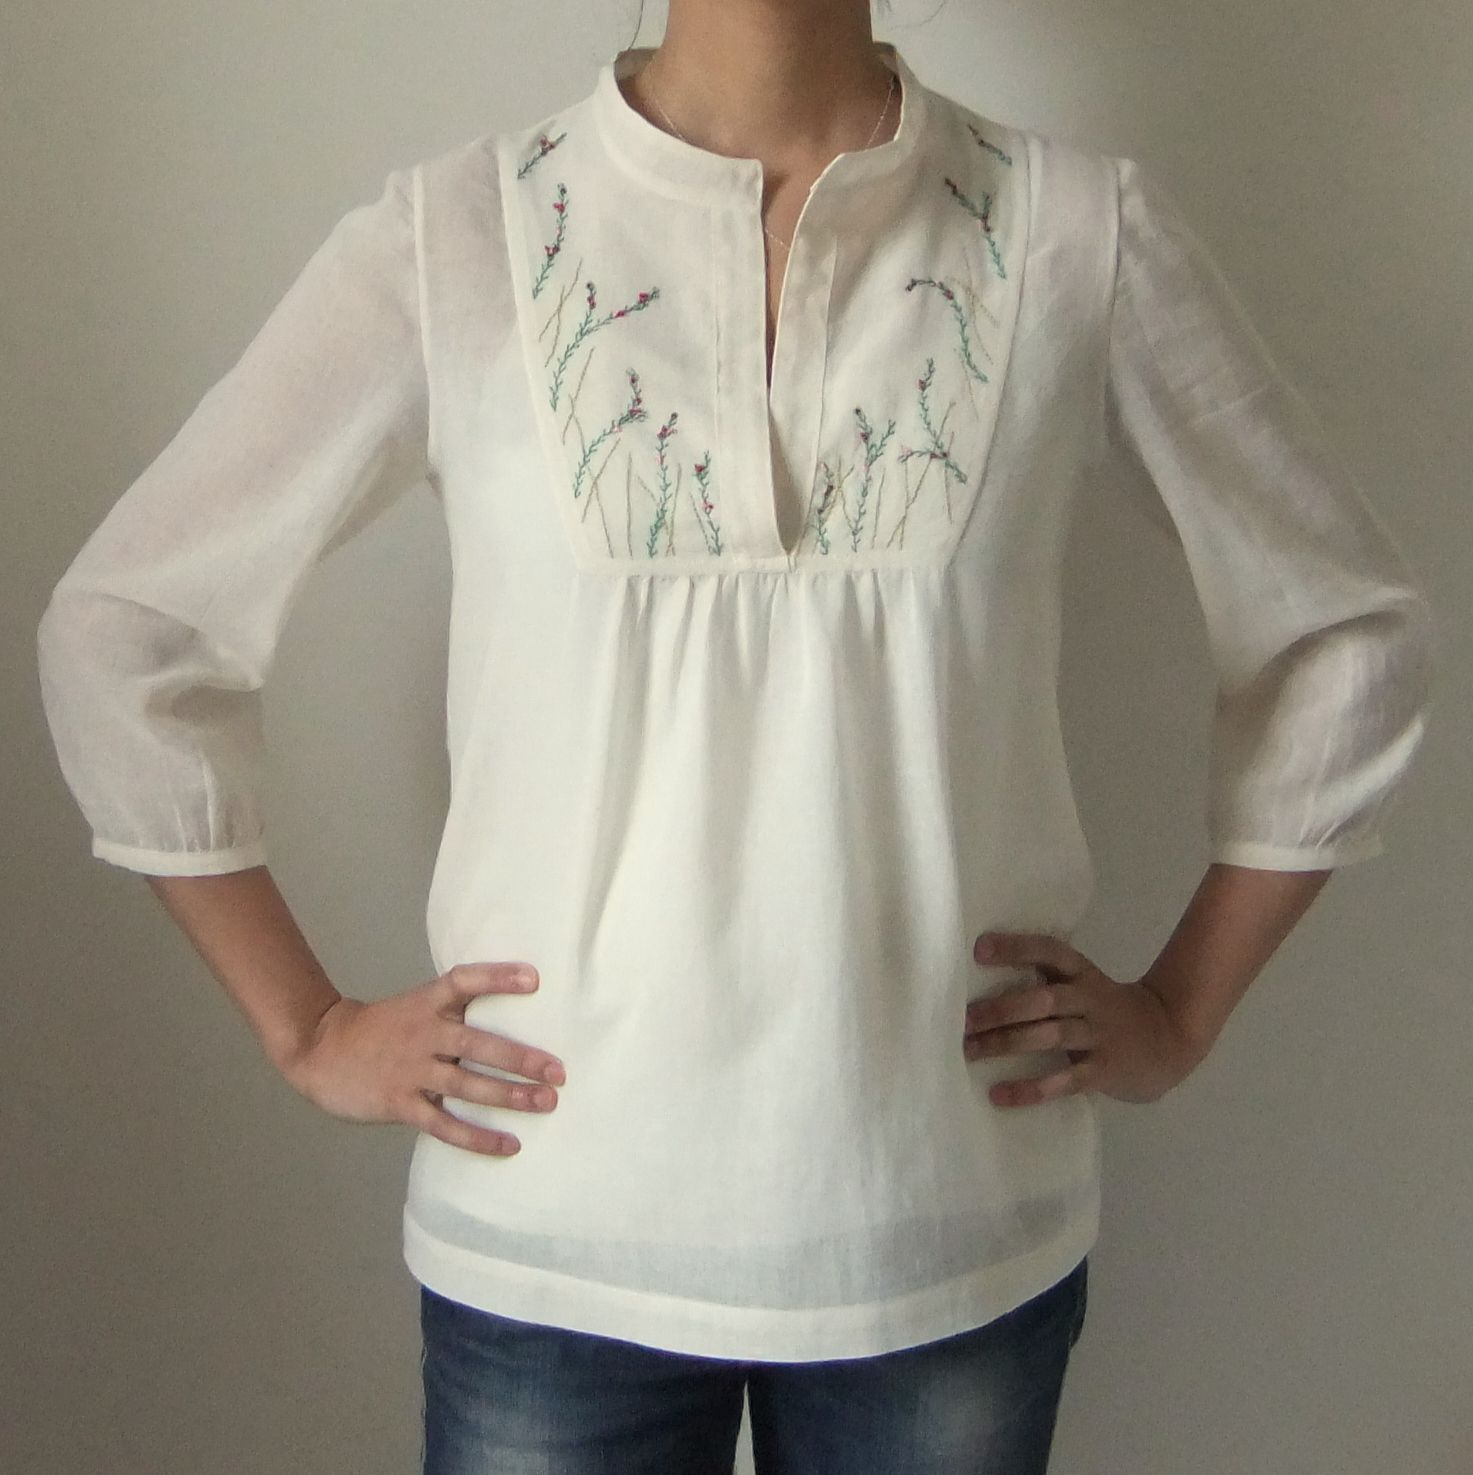 embroidered tova | Sew | Pinterest